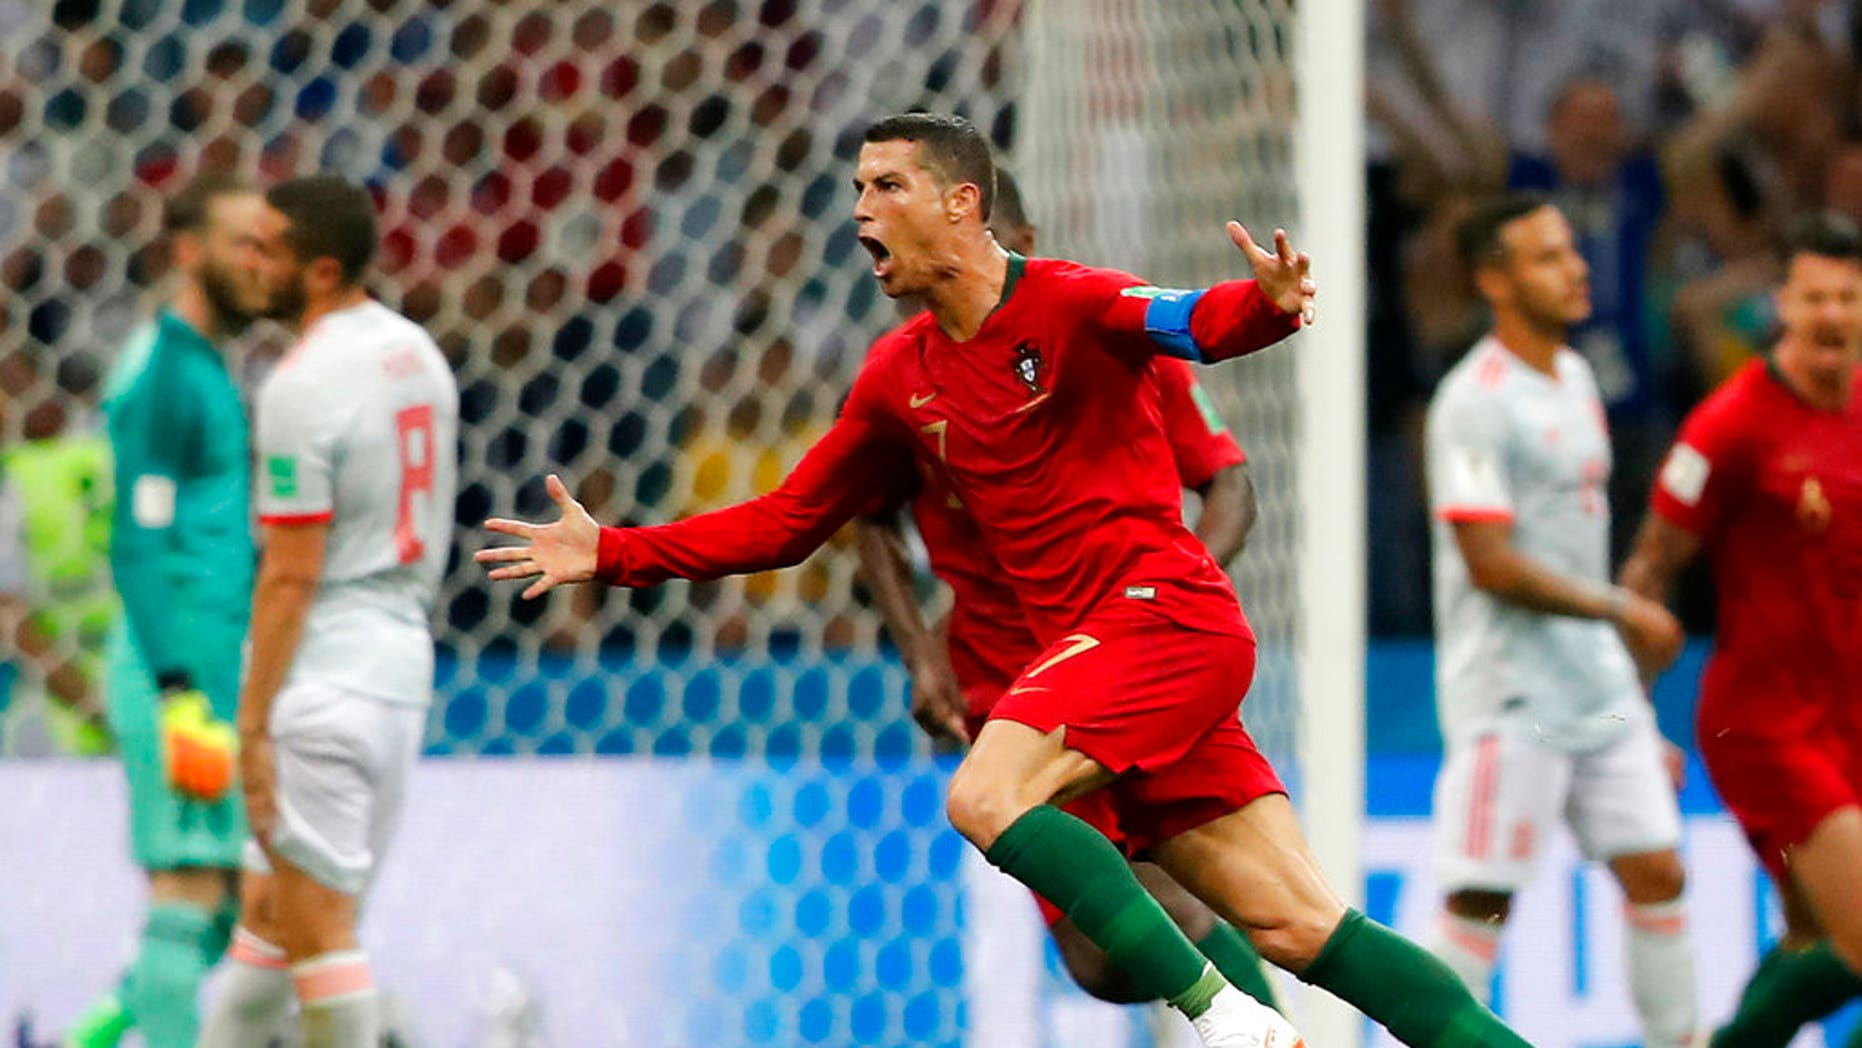 Cristiano Ronaldo celebrates after scoring his third goal with a free kick in Portugal's opening World Cup match against Spain at Fisht Stadium in Sochi, Russia, on Friday.